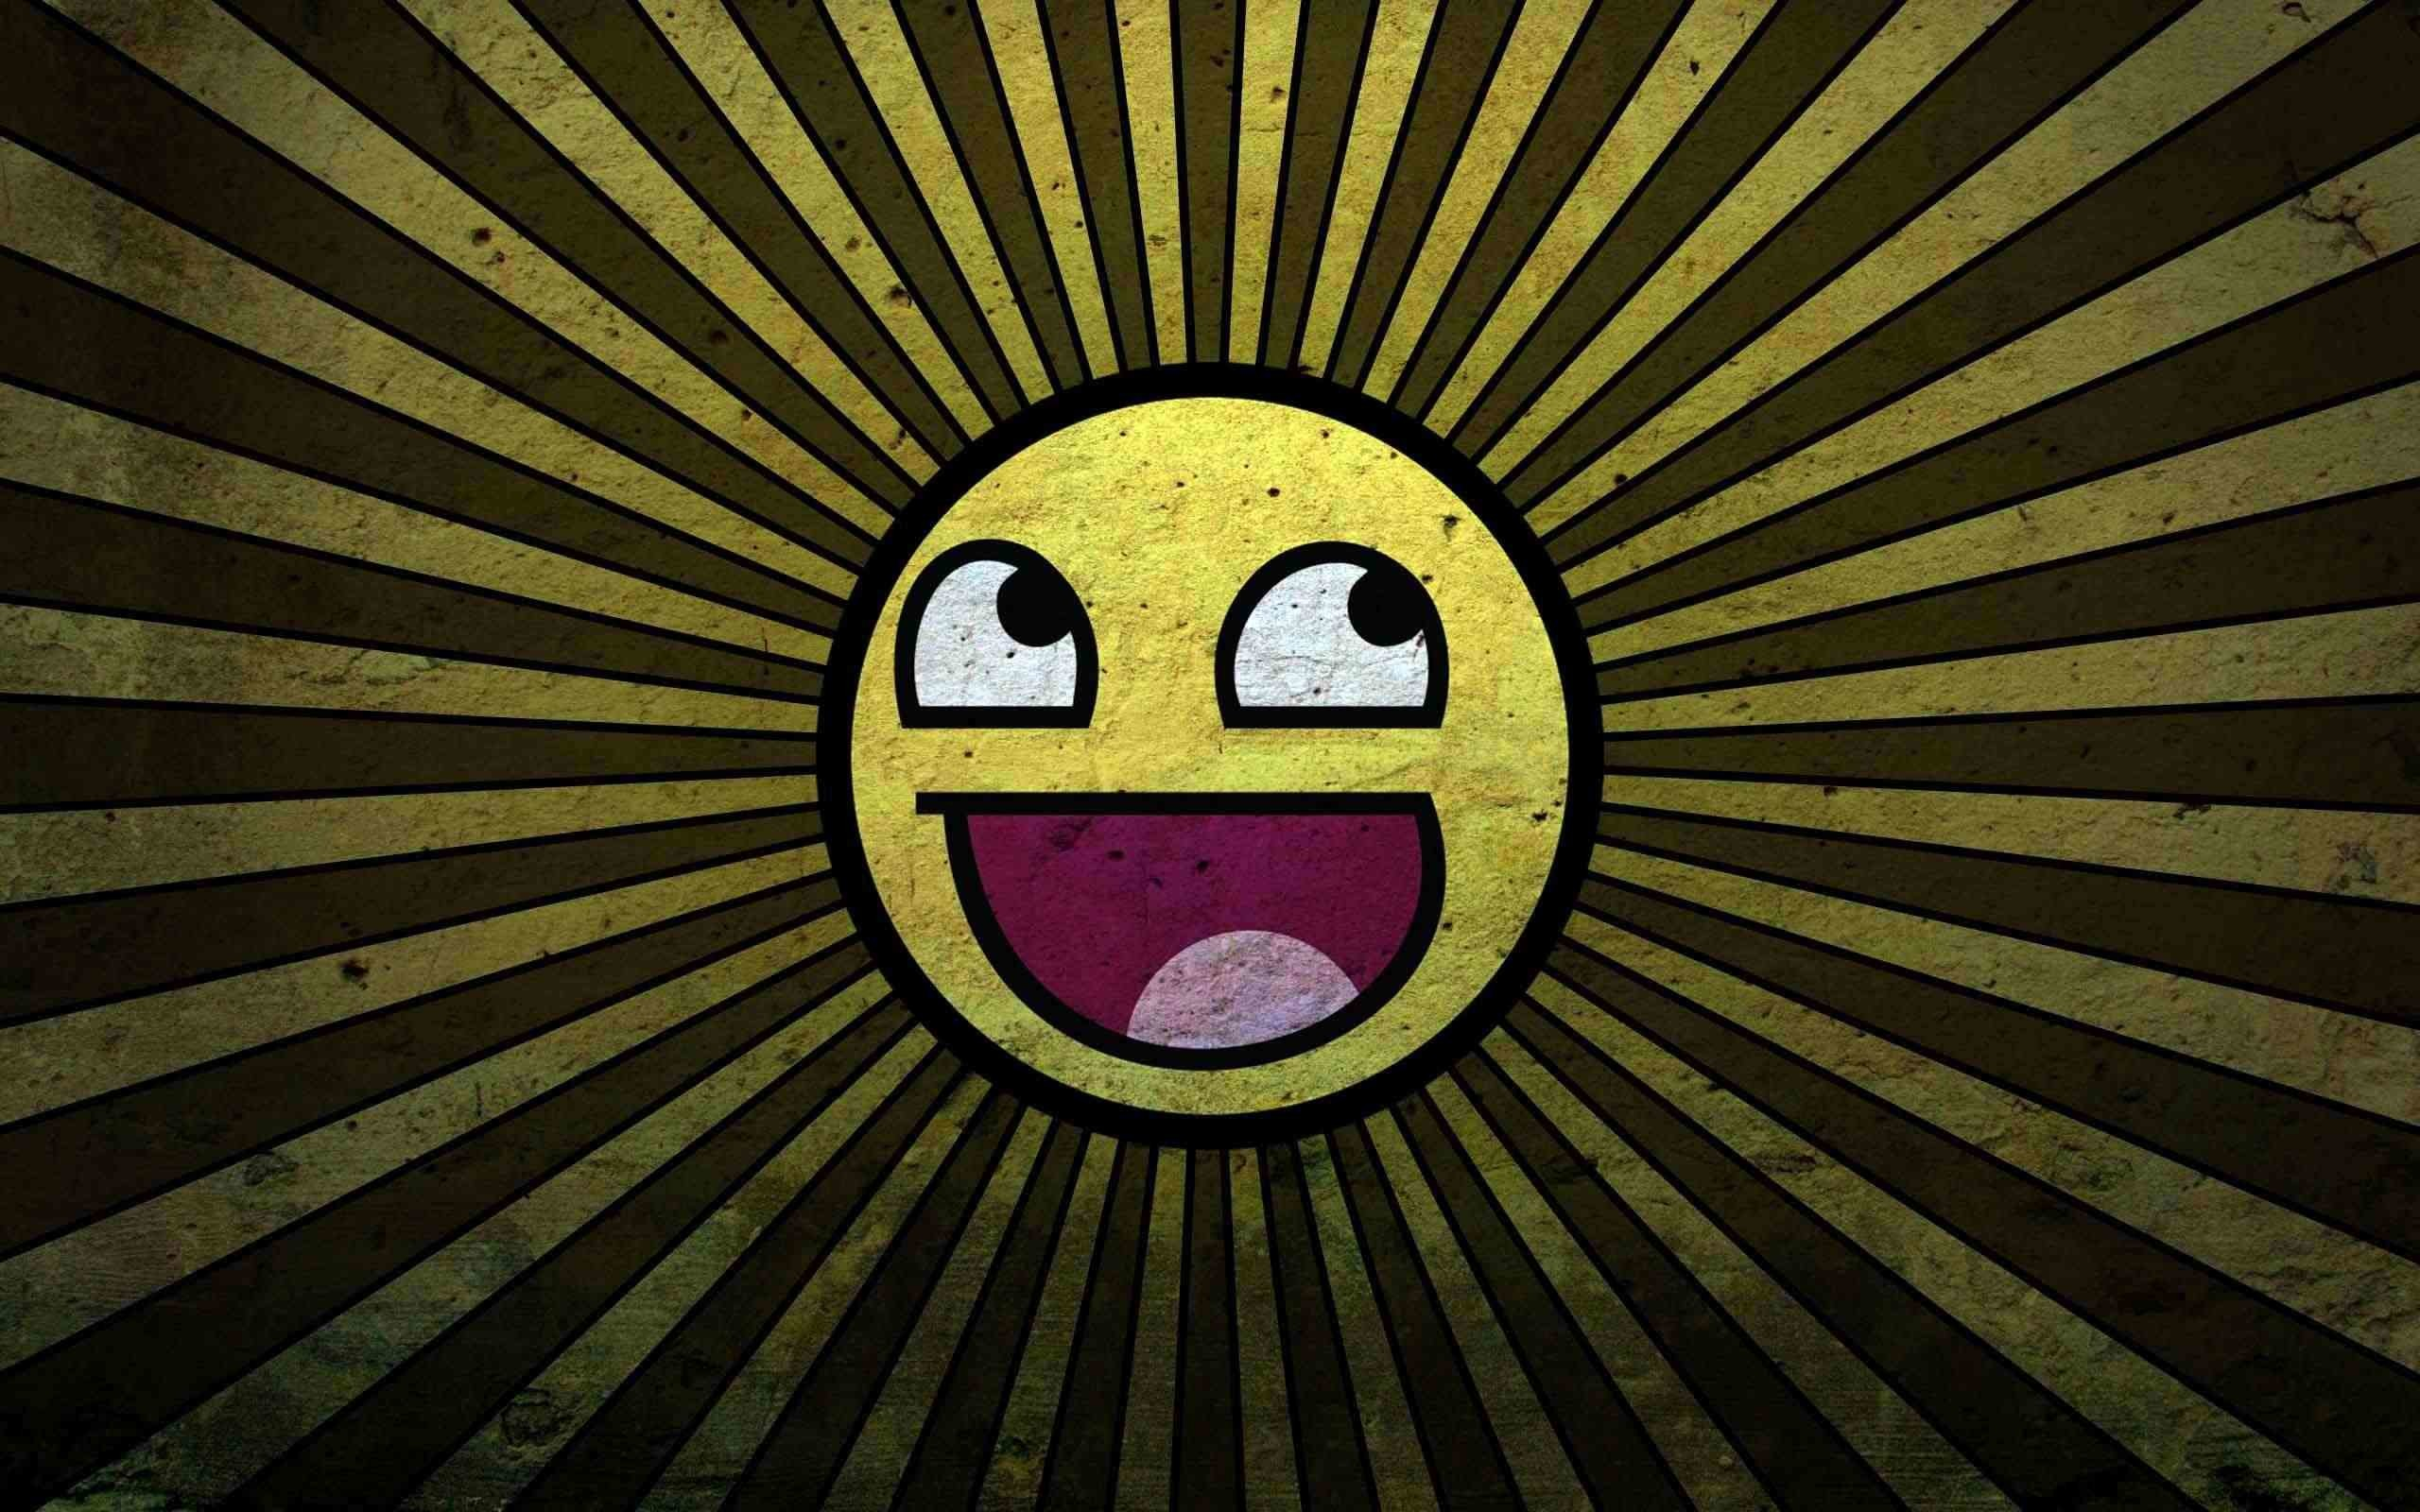 wallpaper.wiki-Epic-Face-Backgrounds-Free-Download-PIC-